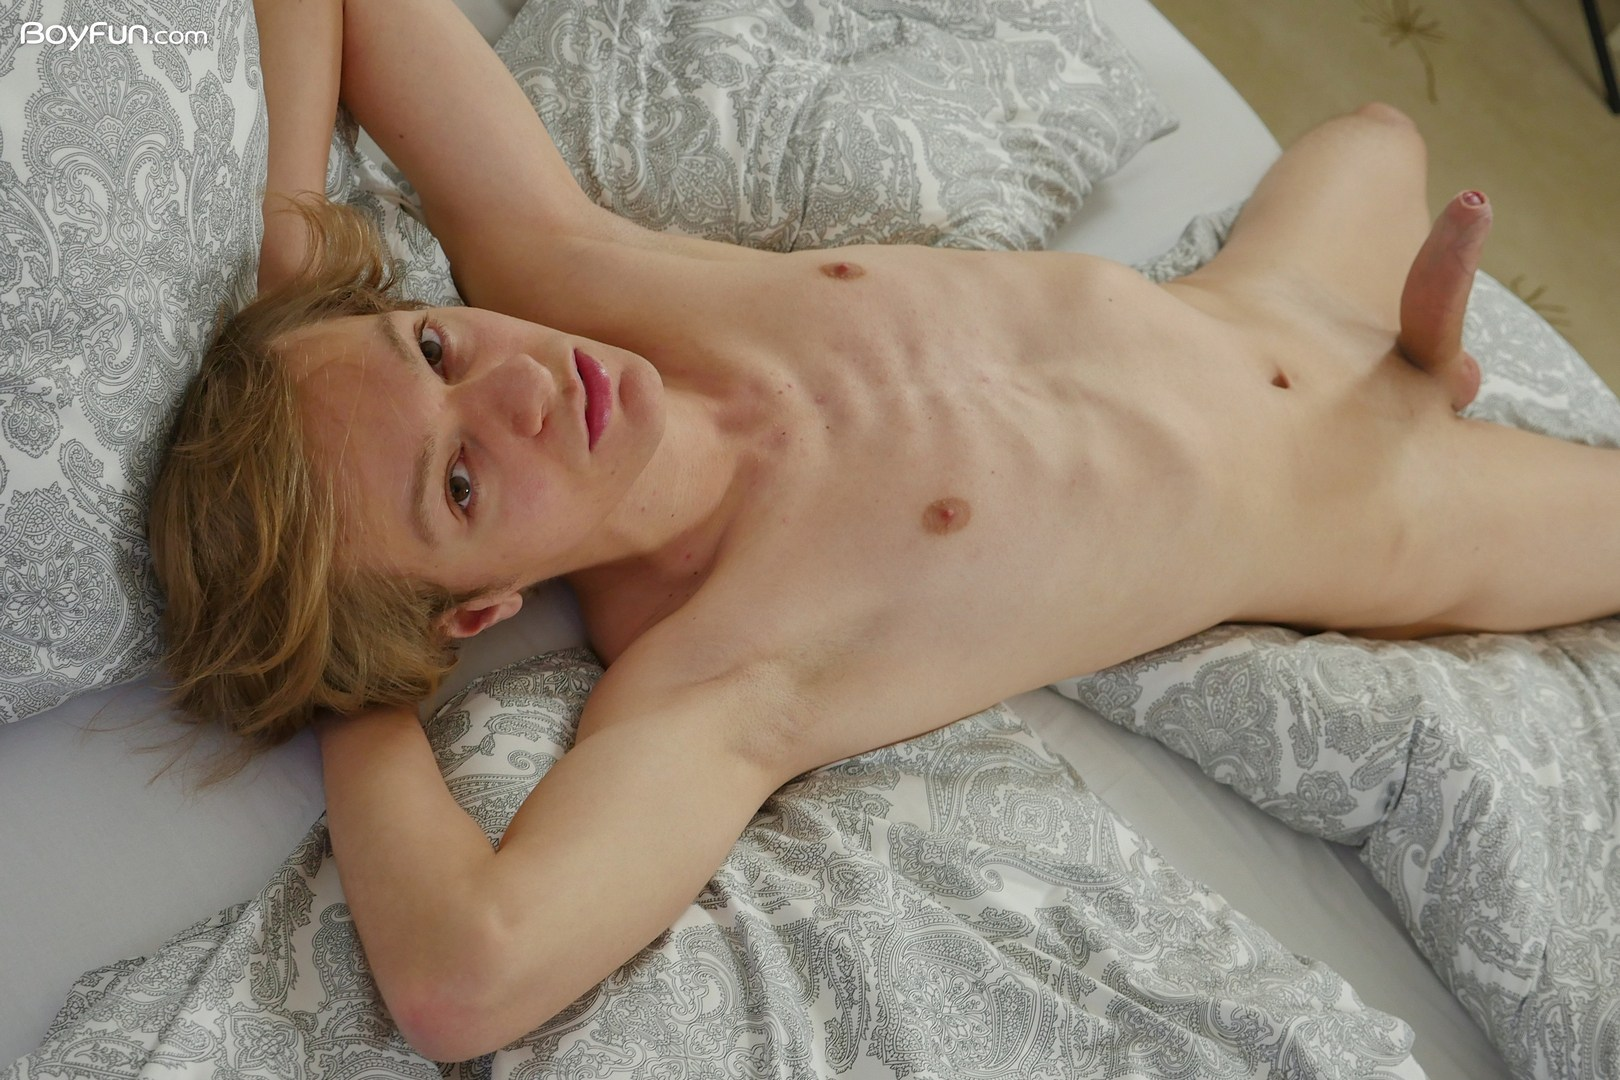 Blonde boy with a big smooth shaved cock